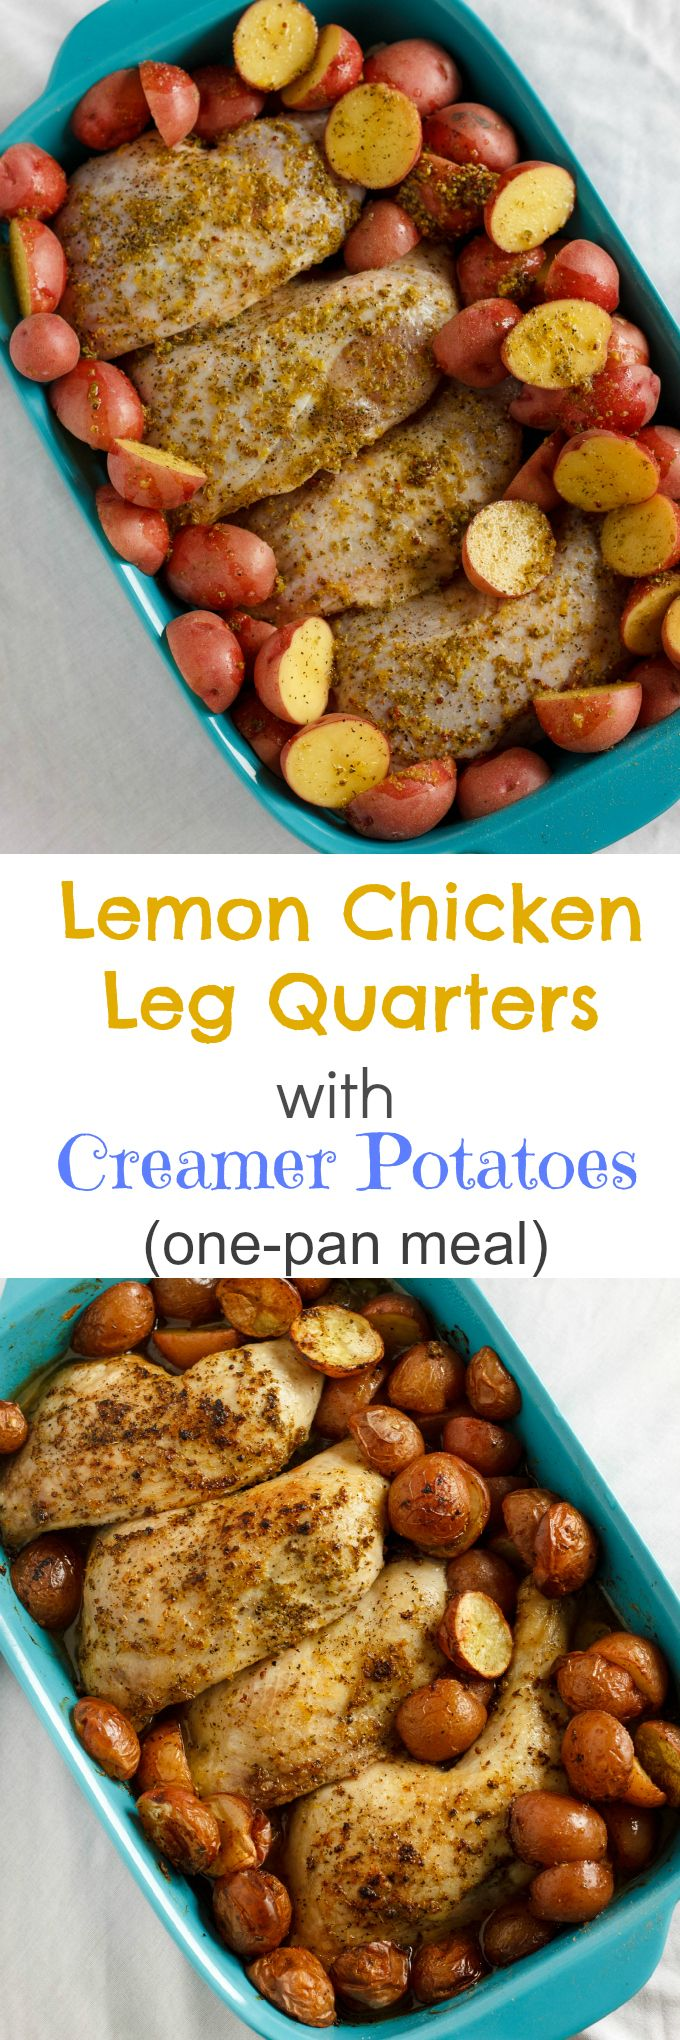 One-Pan Lemon Chicken Leg Quarters with Creamer Potatoes 2